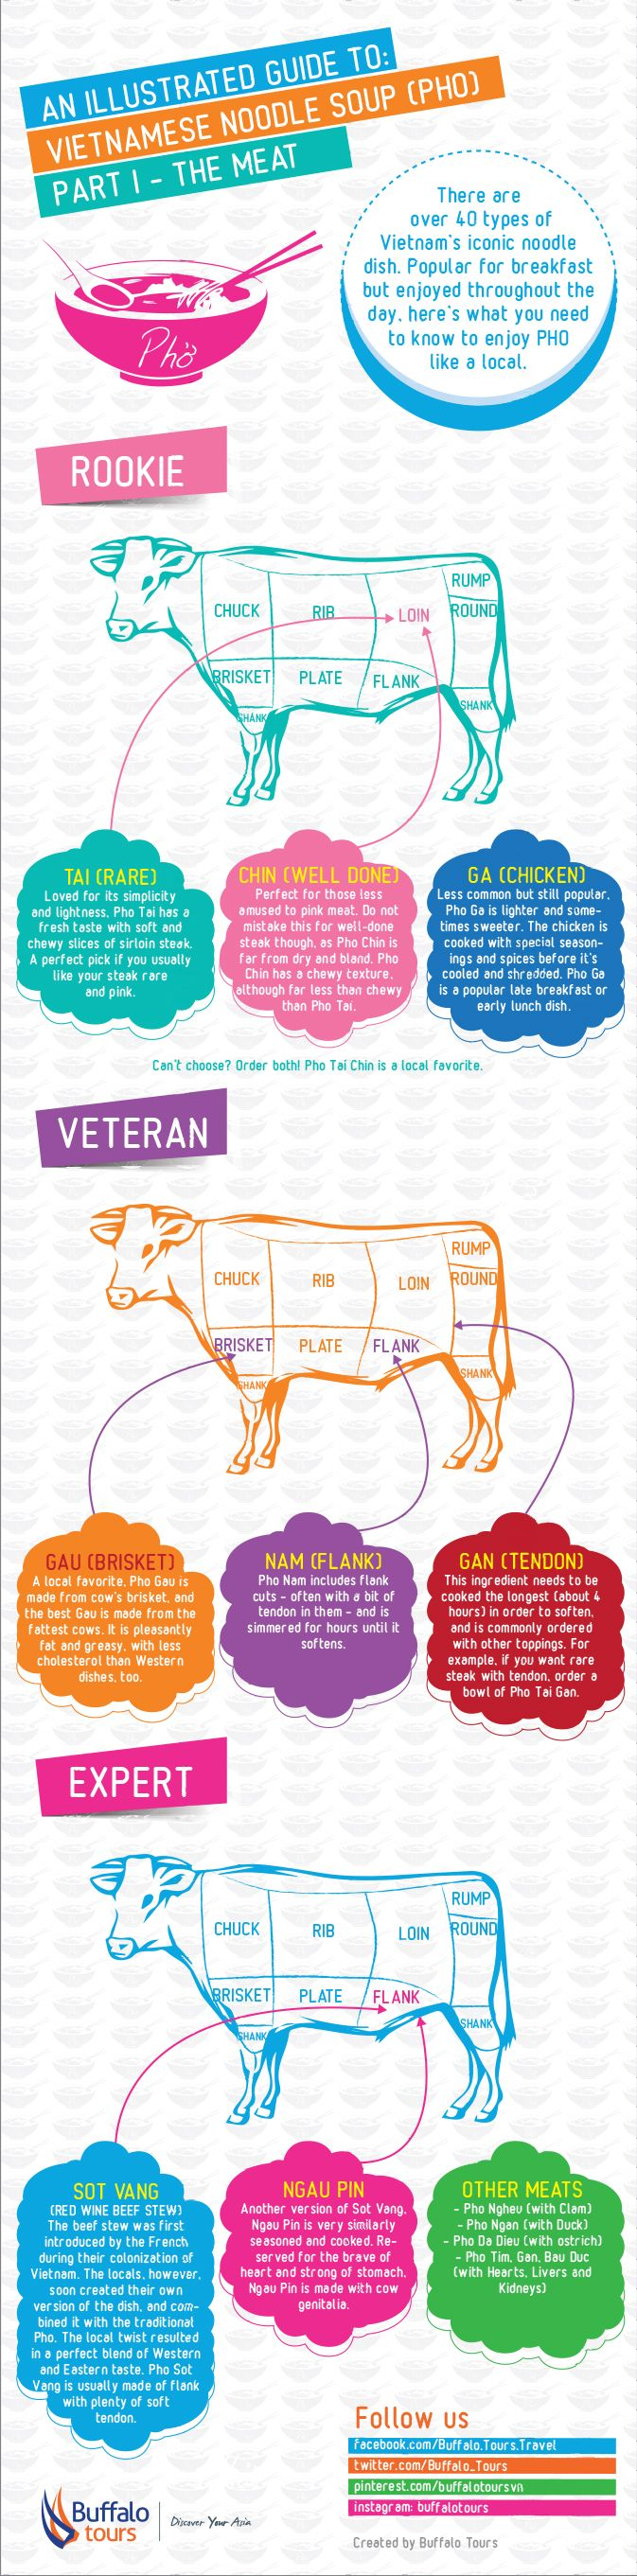 An Illustrated Guide to: Pho (Part I – The Meat): A must read if you are keen on learning more about the Vietnamese dish | Buffalo Tours Travel Blog